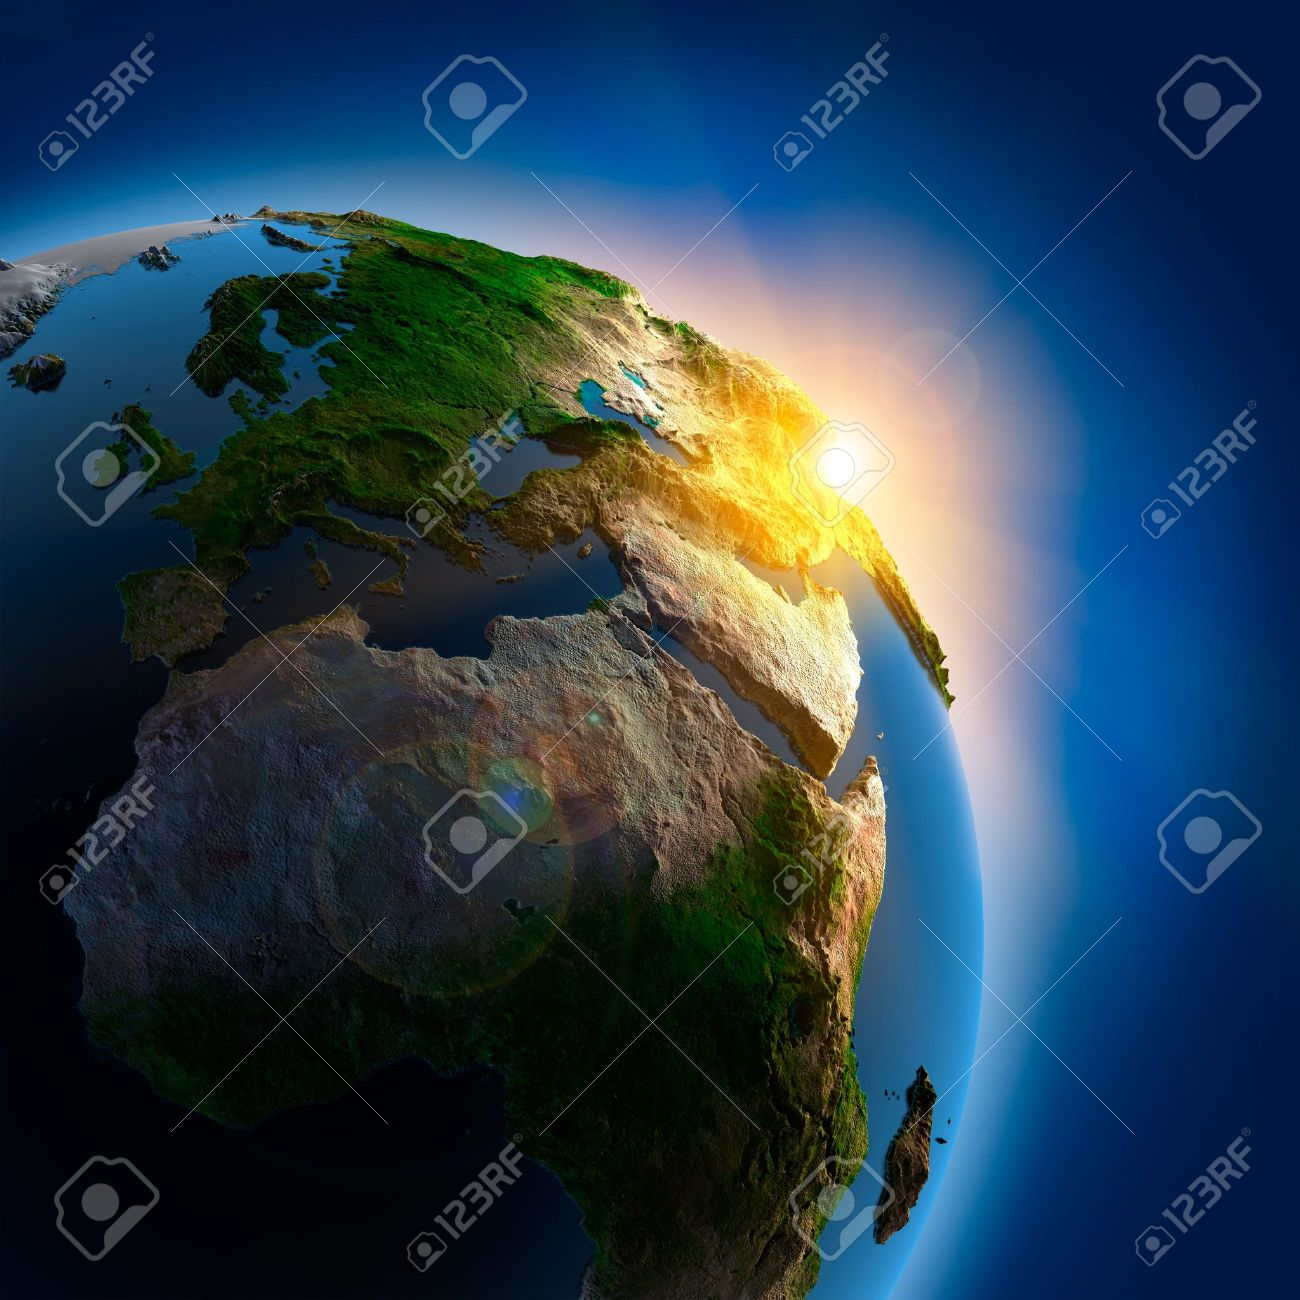 The sun's rays from the rising sun illuminate the earth in outer space Stock Photo - 7731542